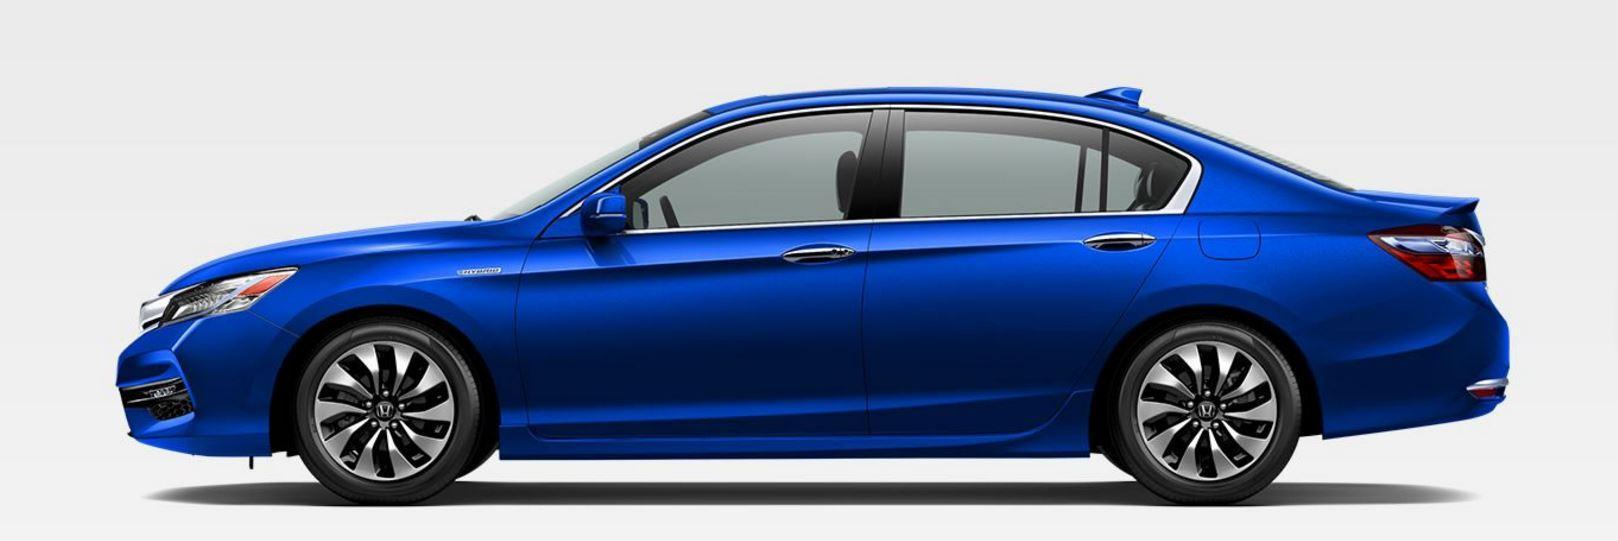 Blue 2017 Honda Accord